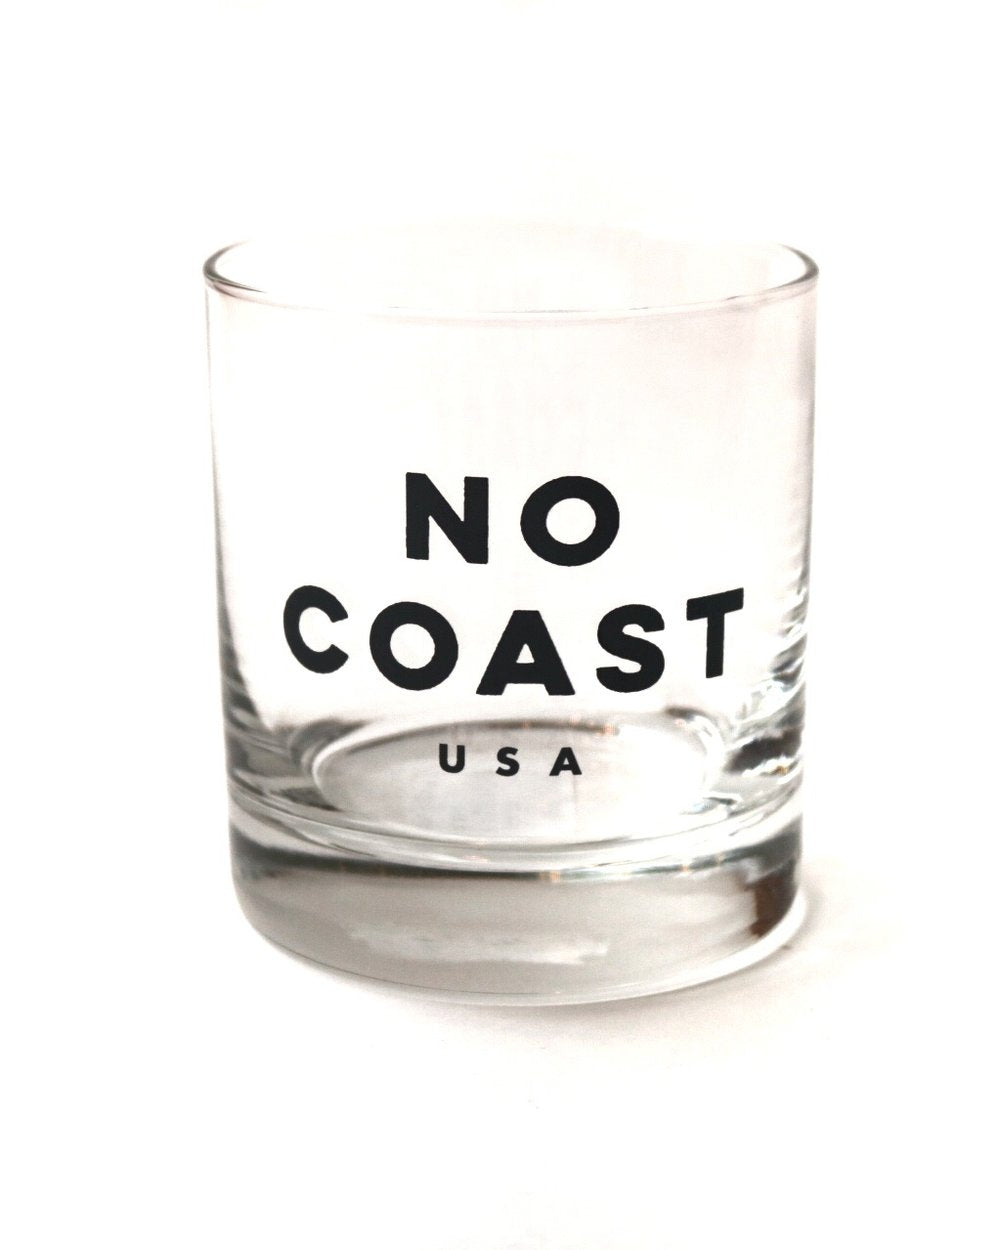 No Coast Rocks Glass